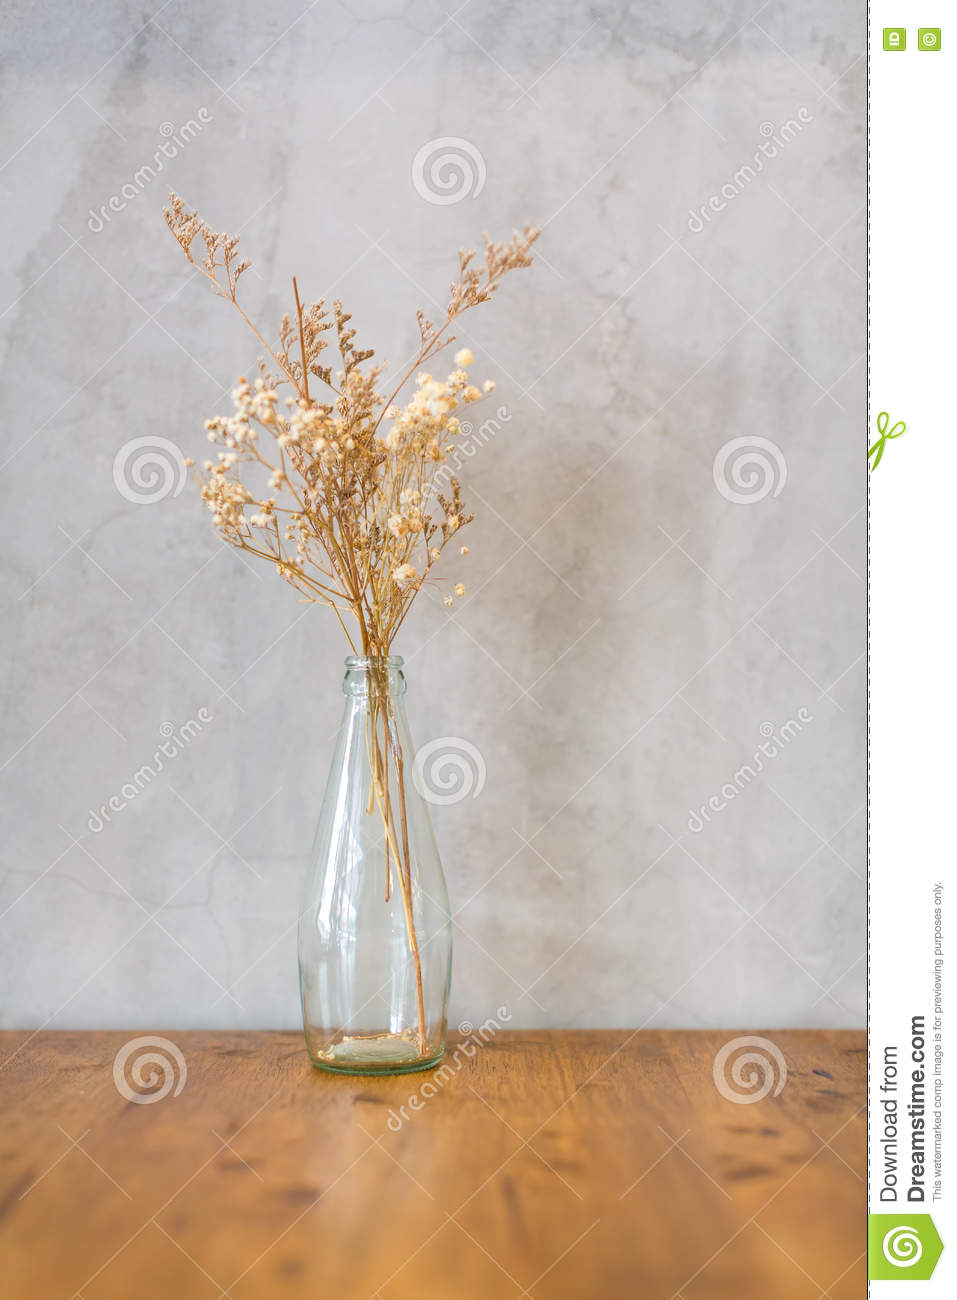 Dry Flower In Tall And Transparent Vase Stock Image Image Of Card Coral 73894067